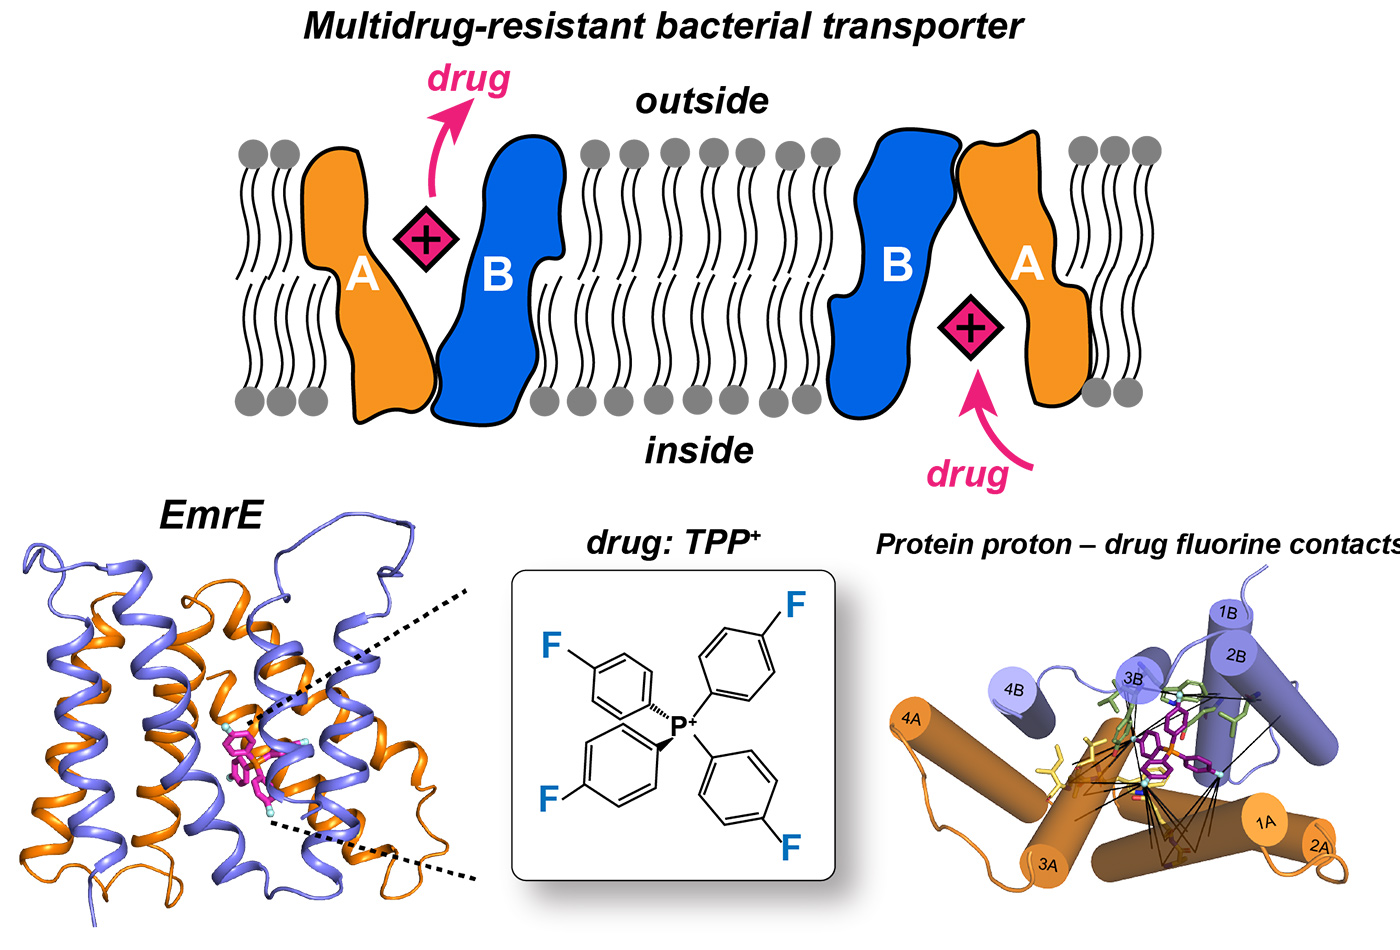 An image depicts the multidrug-resistant bacterial transporter discovered by the Hong Lab's research.